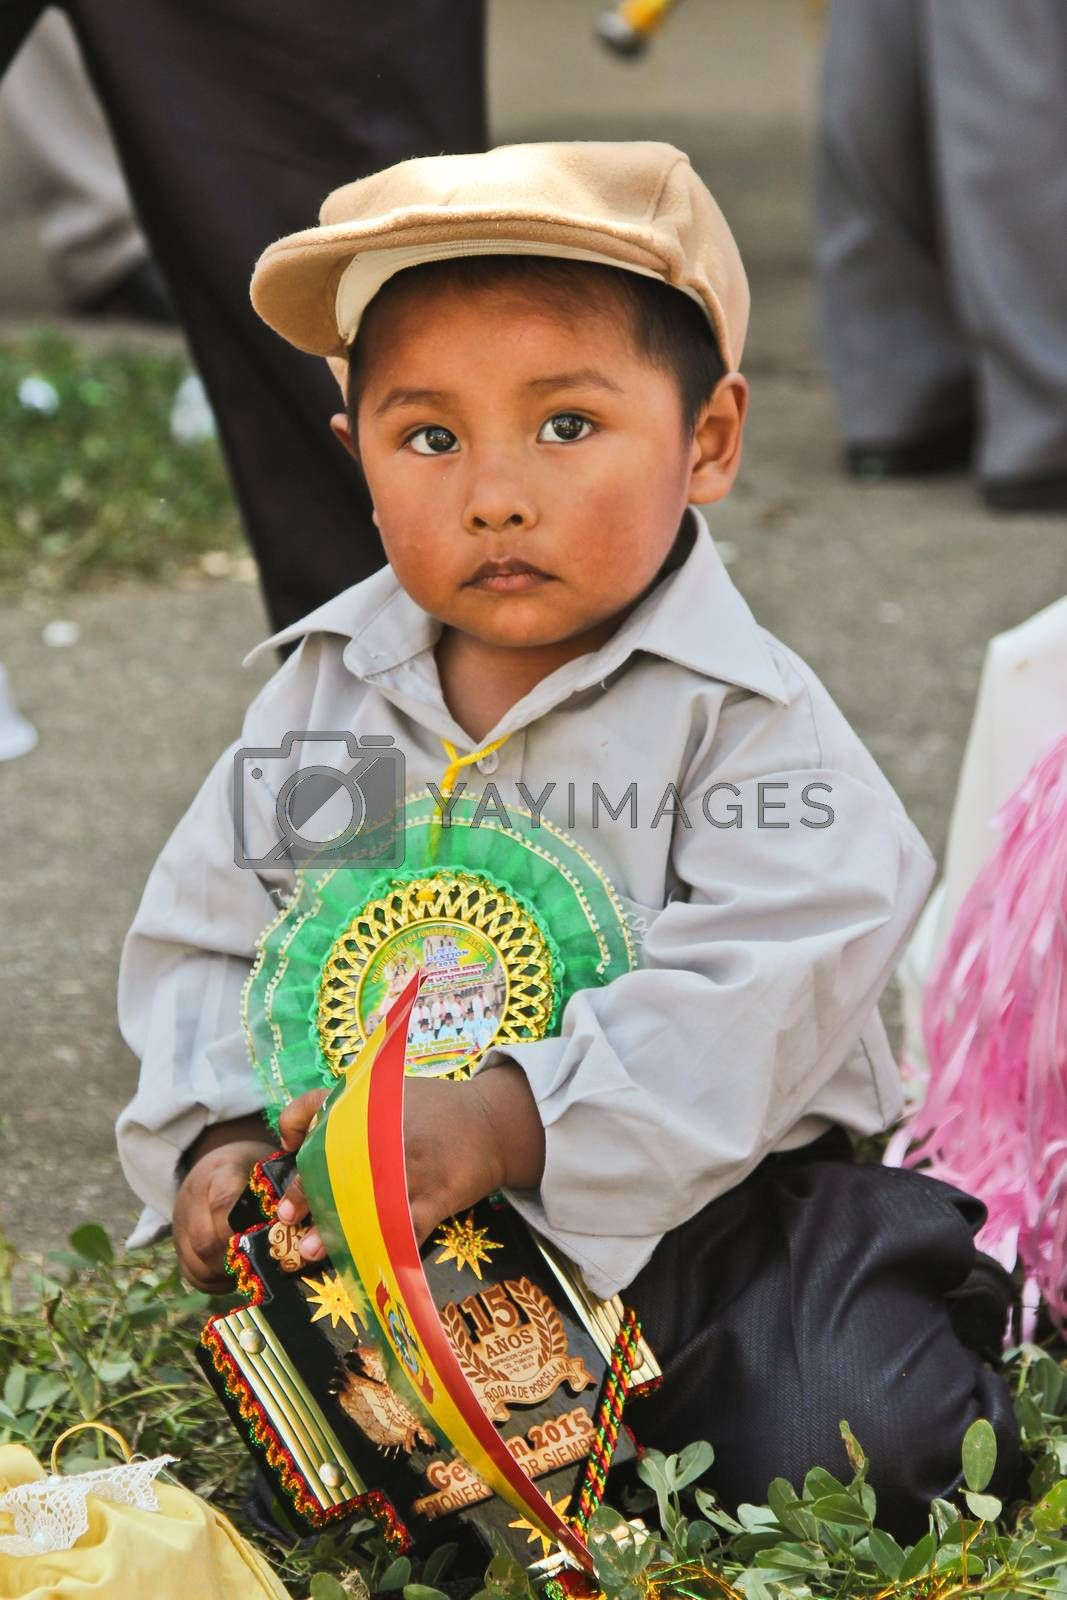 SAO PAULO, BRAZIL August 9 2015: An unidentified boy with typical costume in the Morenada parade in Bolivian Independence Day celebration in Sao Paulo Brazil.